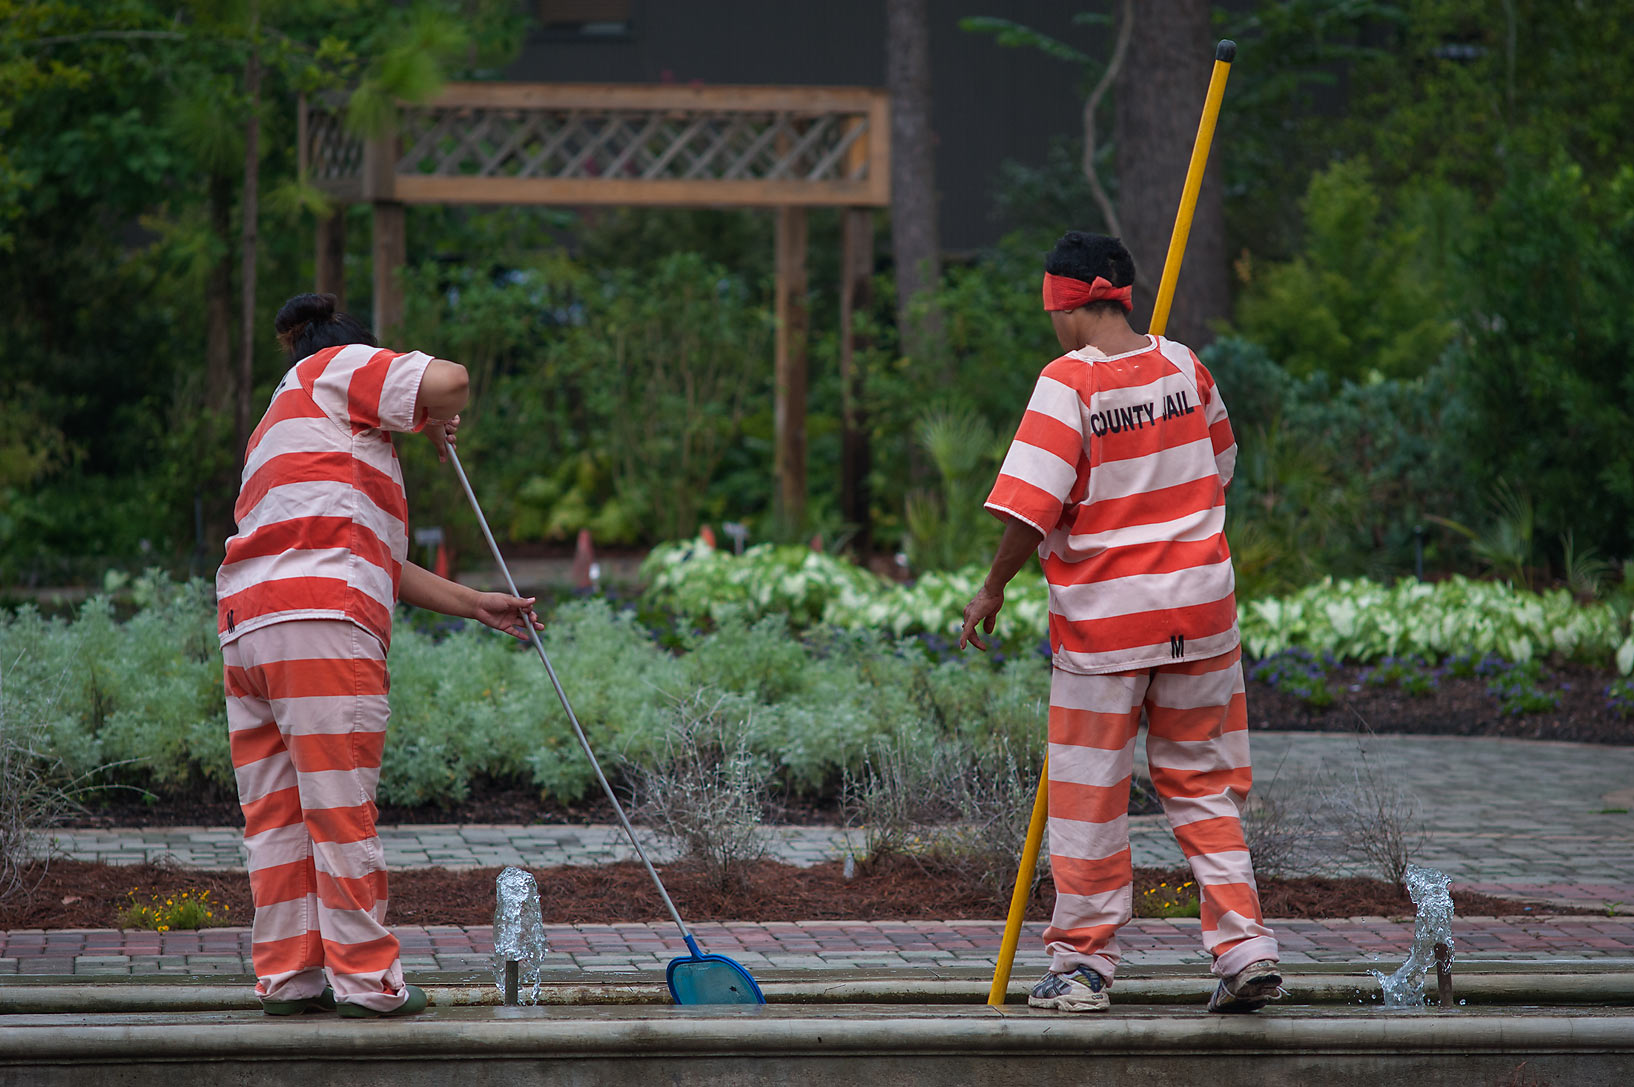 Prisoners taking care of water fountain at...Gardens. Humble (Houston area), Texas